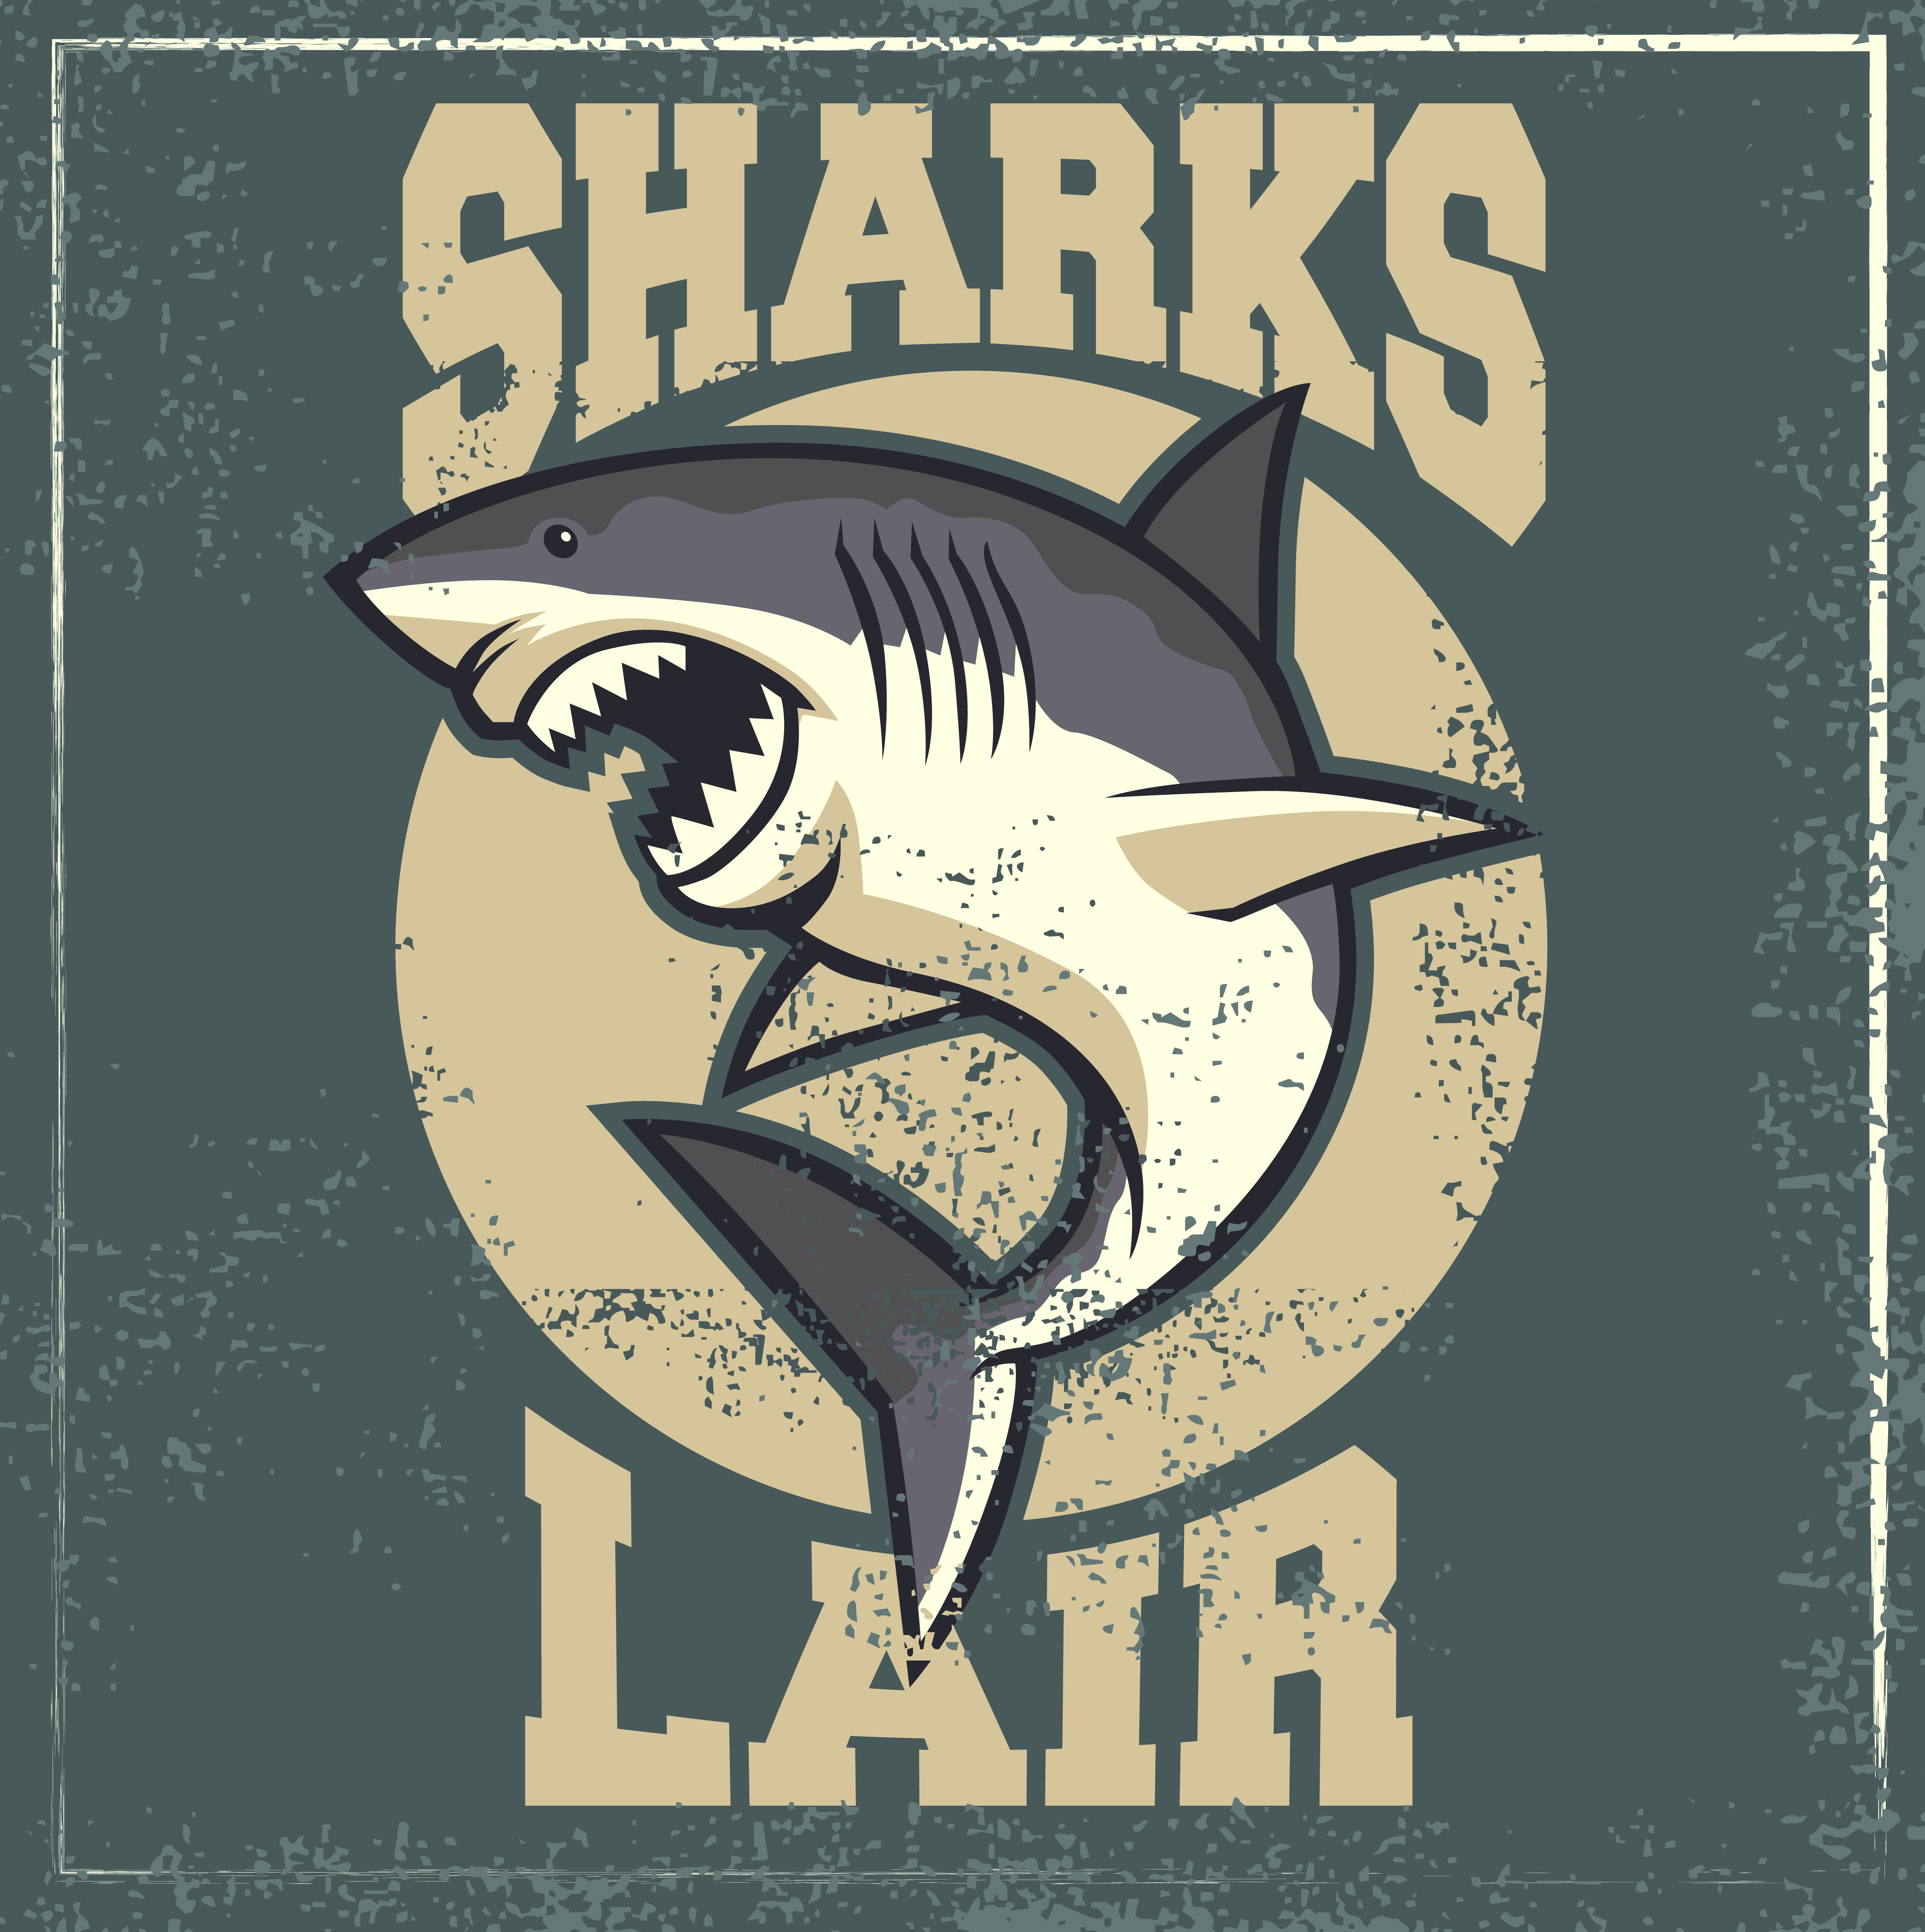 Fred Sharks Lair 16 x 16 inch